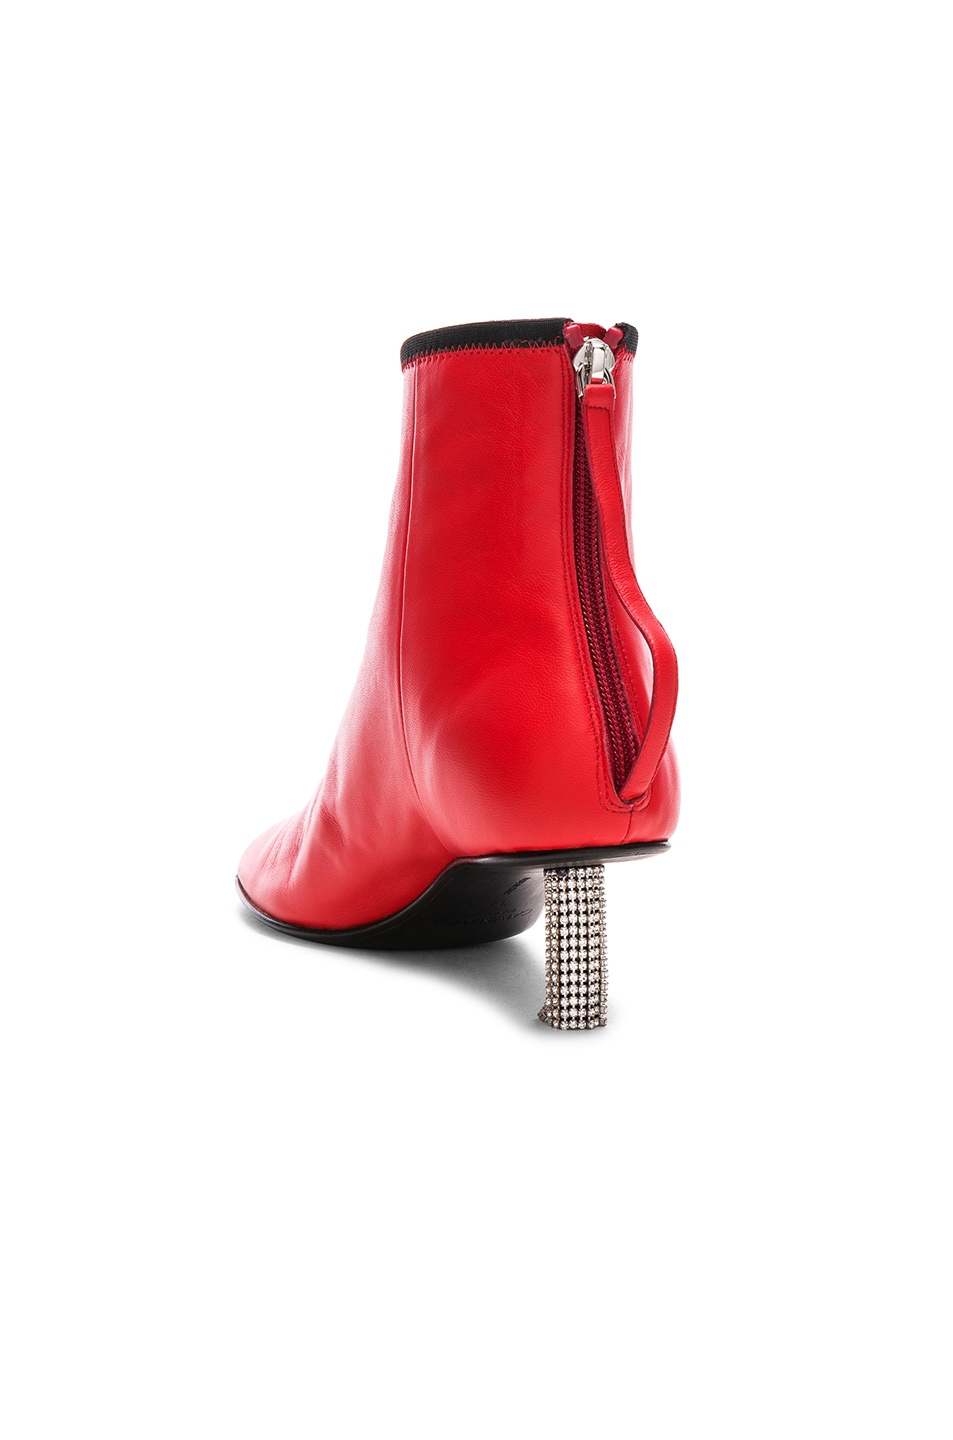 Image 3 of CALVIN KLEIN 205W39NYC Grainne Leather Crystal Heel Ankle Boots in Bright Red & Black